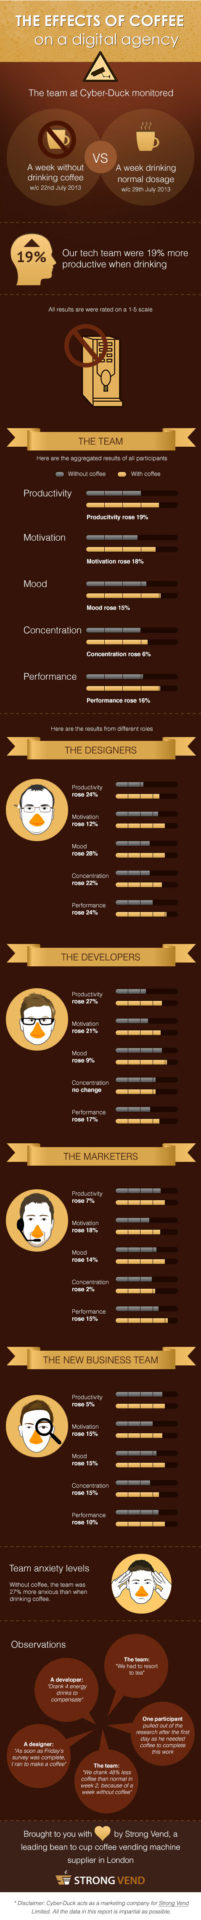 Does coffee increase workplace productivity? infographic London